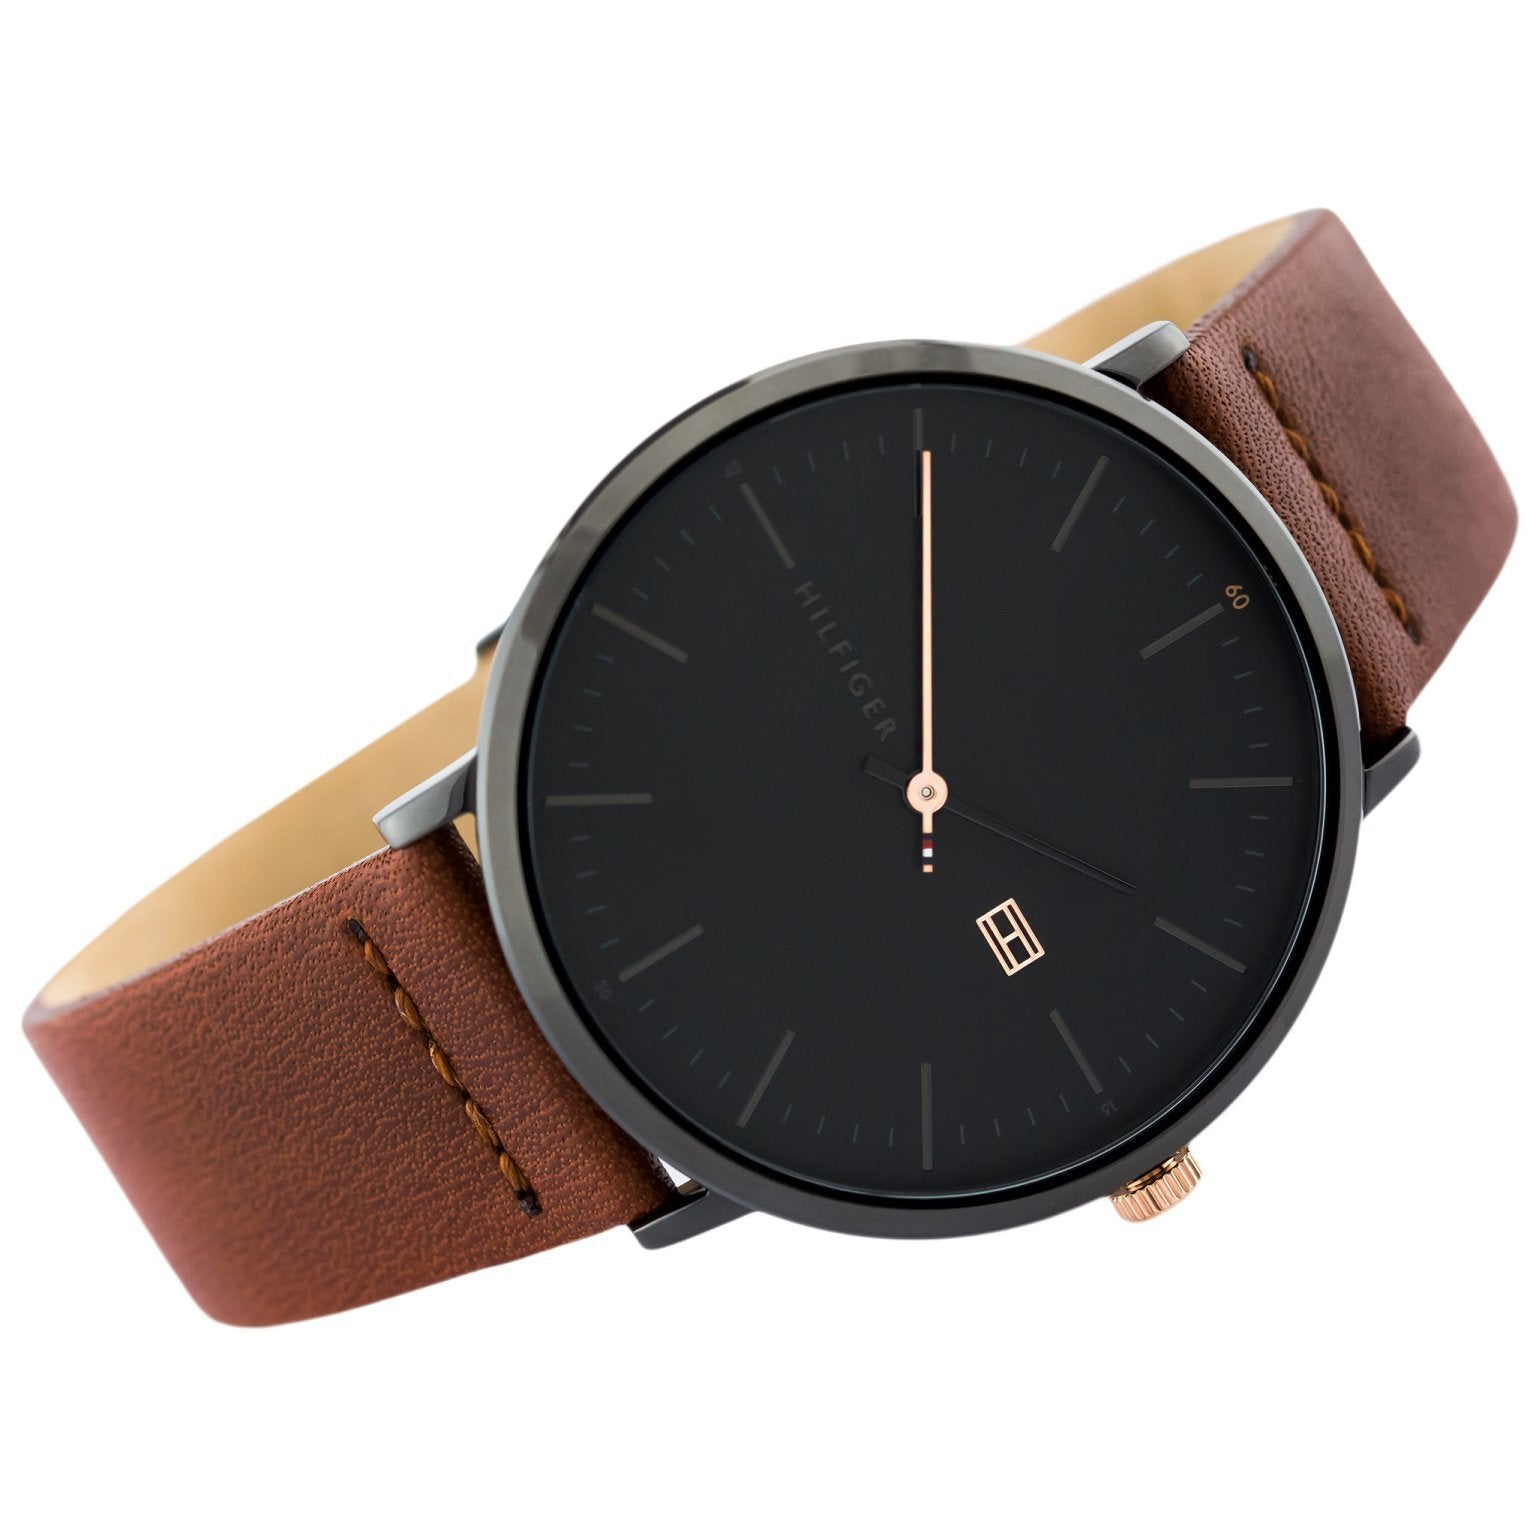 7598c6be Tommy Hilfiger Men's Brown Leather Watch - 1791461 – The Watch ...